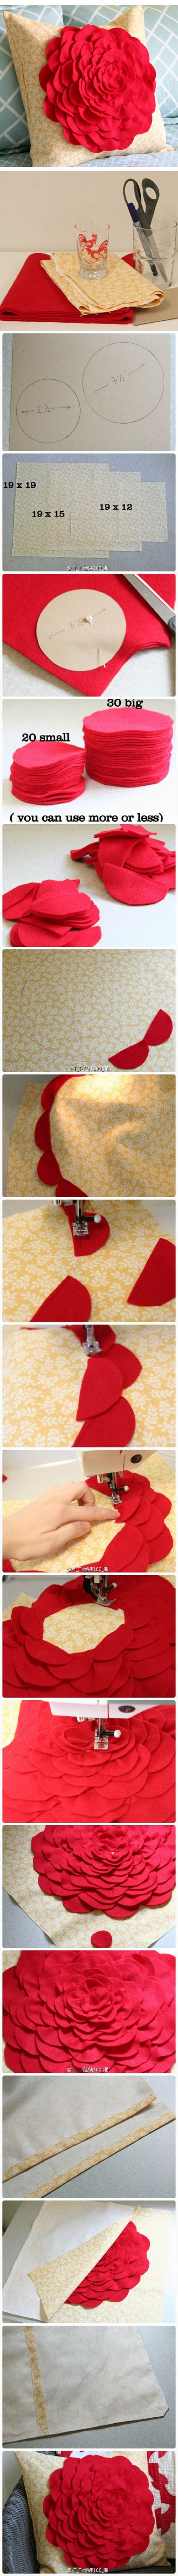 sewing-projects_10